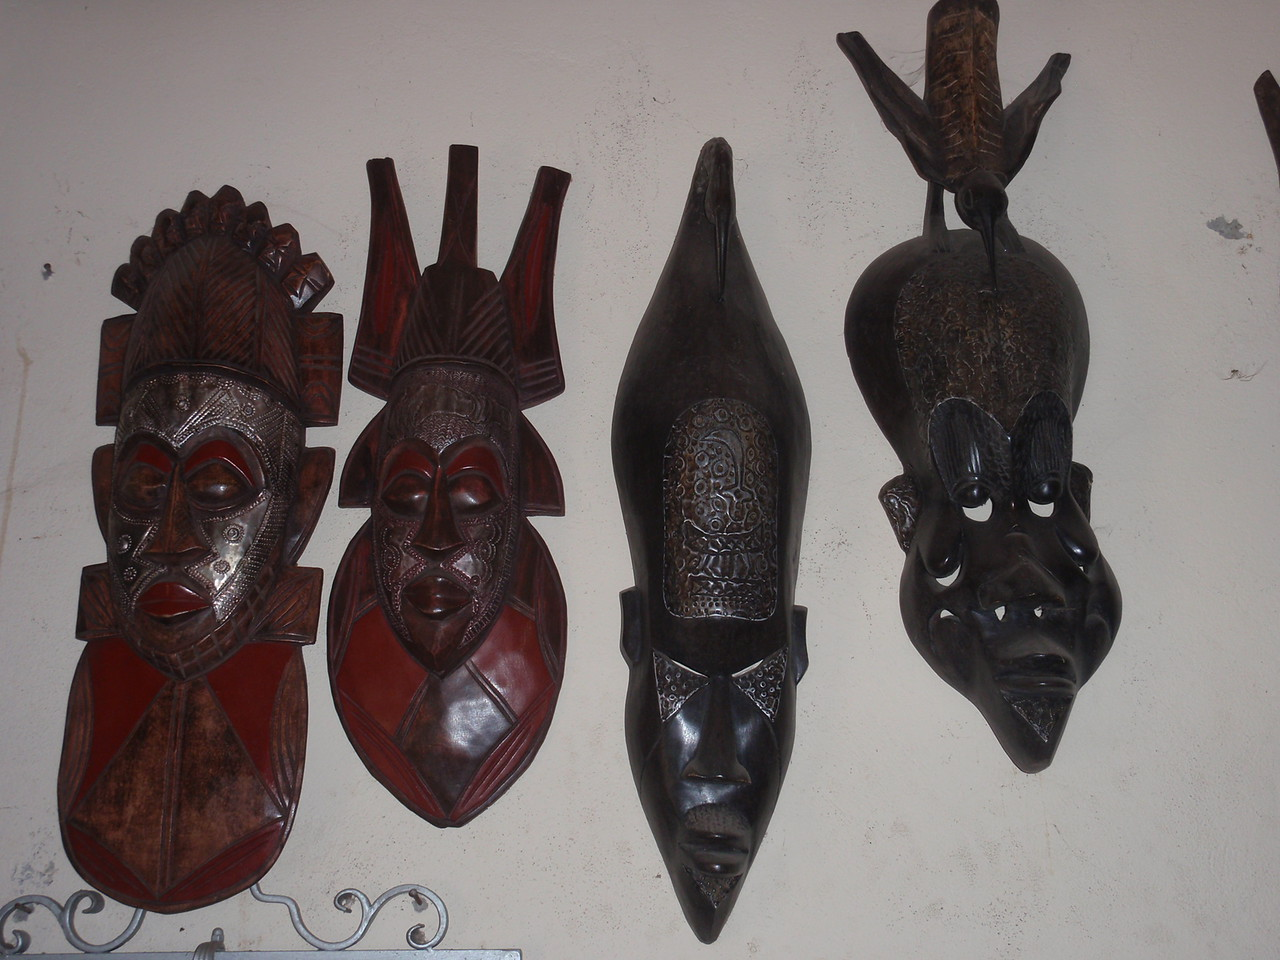 152_Cotonou  The Craft Market  Woodcarvings  Masks